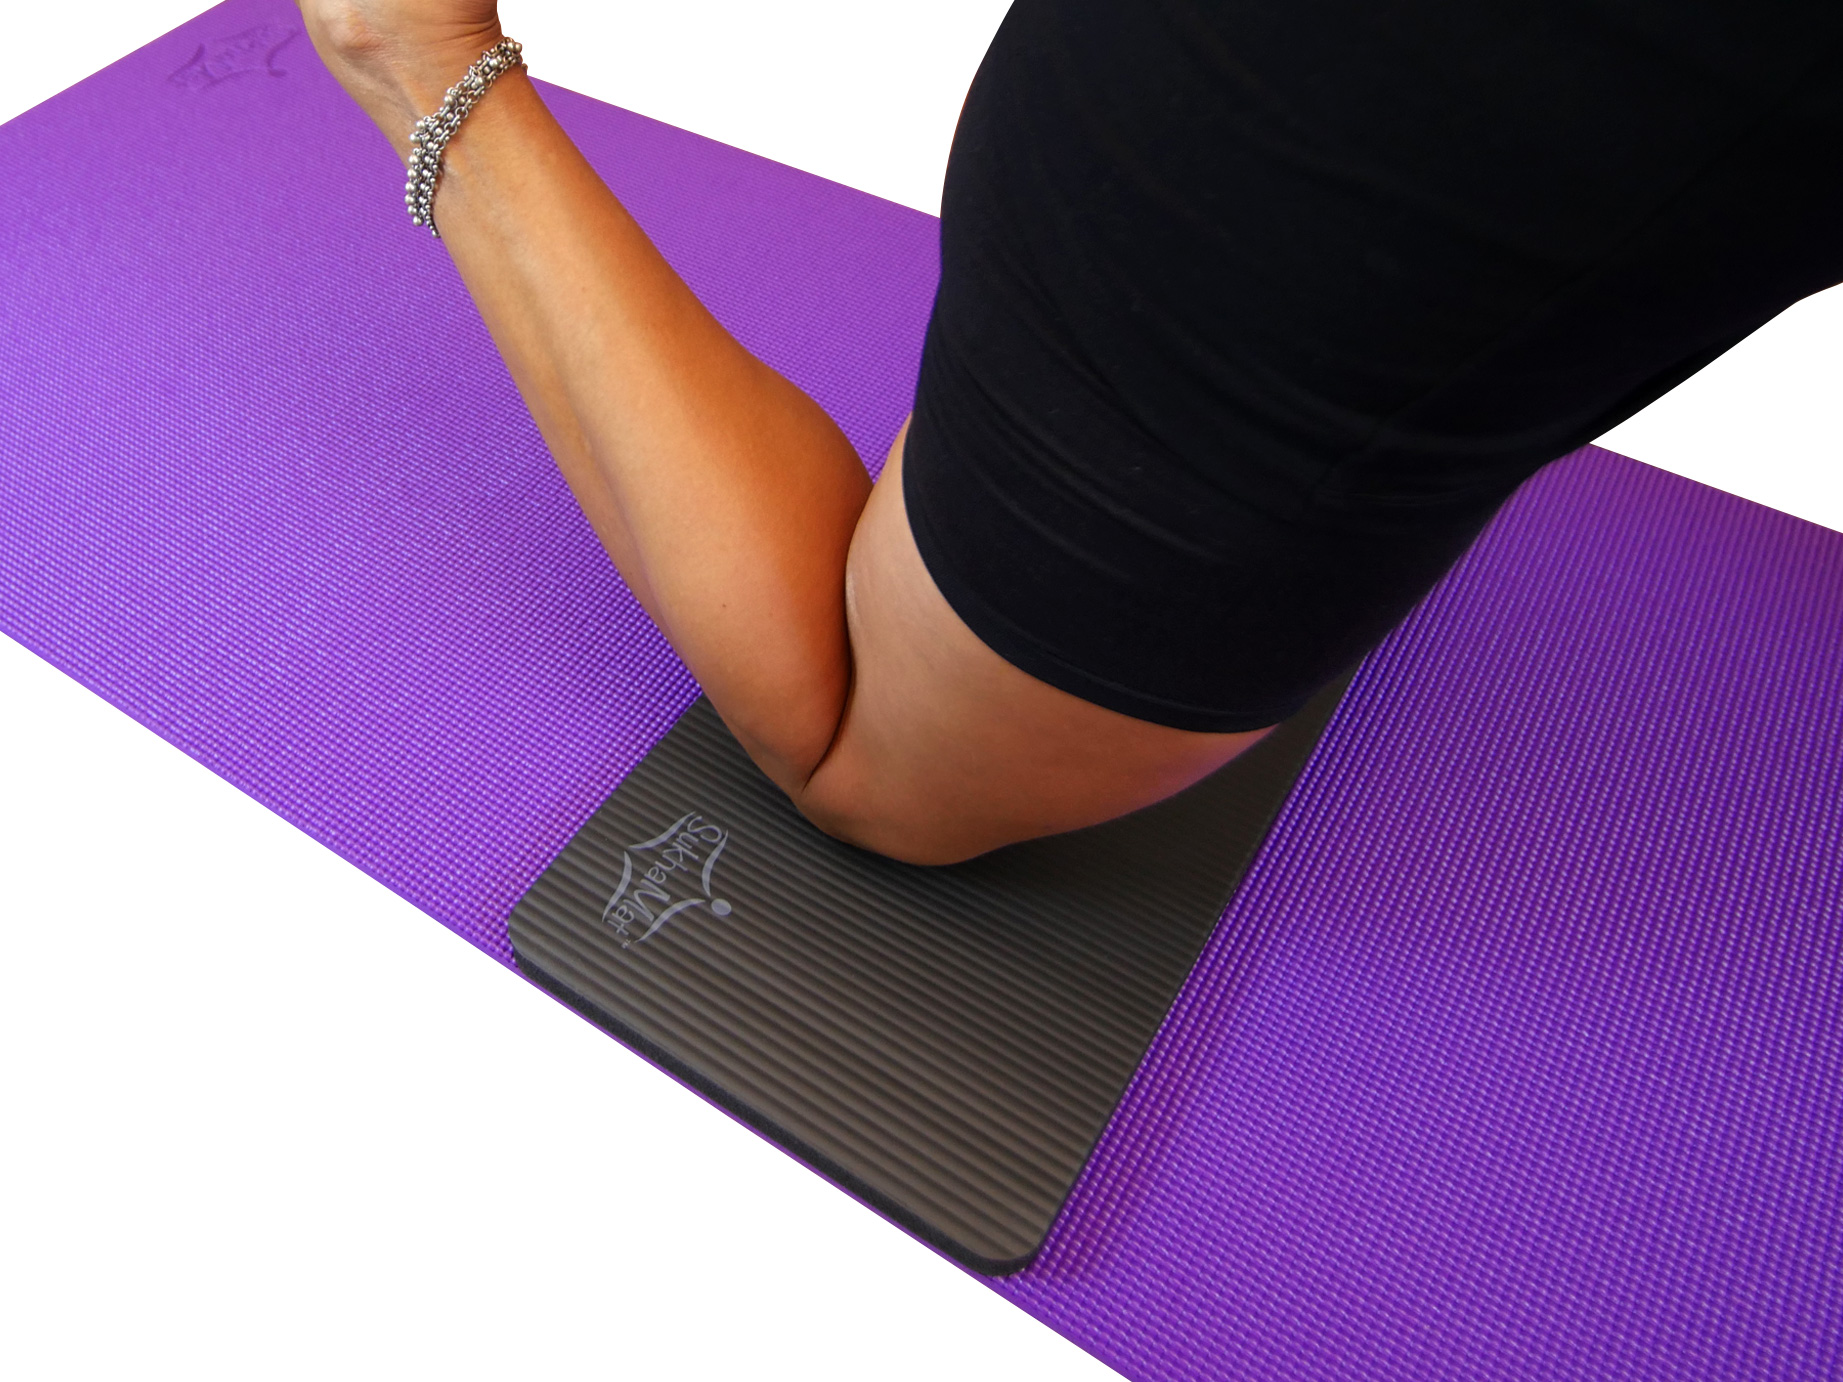 Yoga Knee Pad Yoga Knee Pad Sukhamat